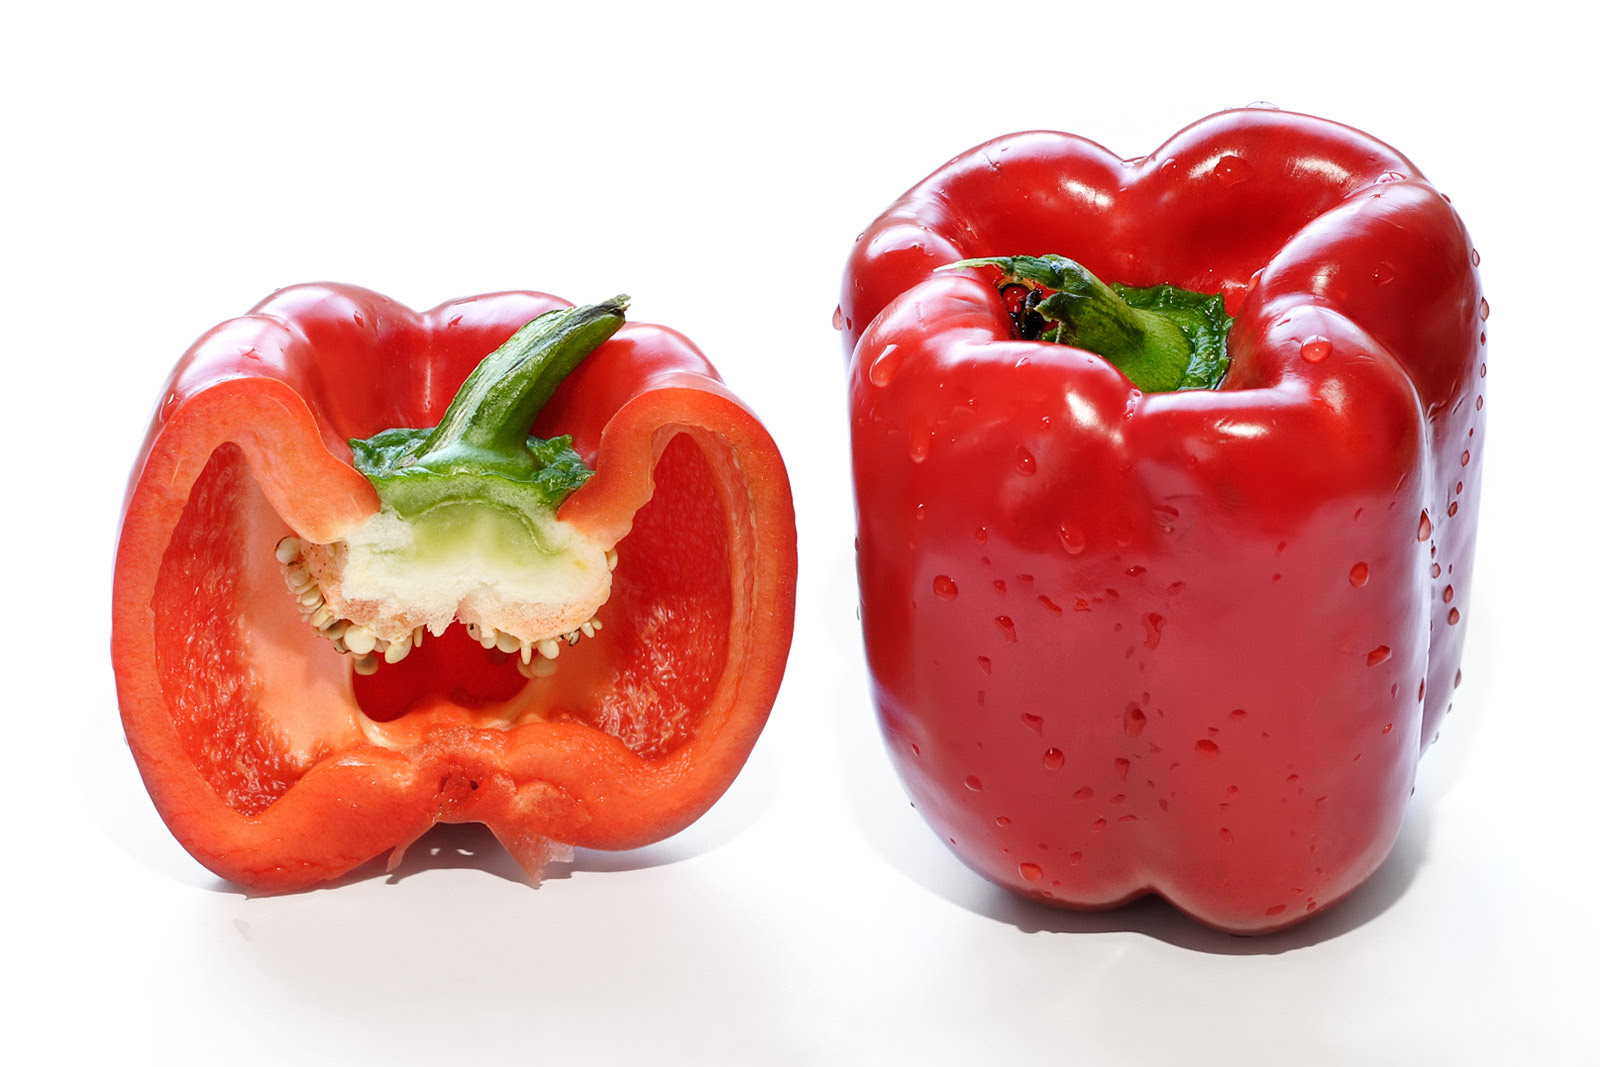 http://upload.wikimedia.org/wikipedia/commons/d/da/Red_capsicum_and_cross_section.jpg